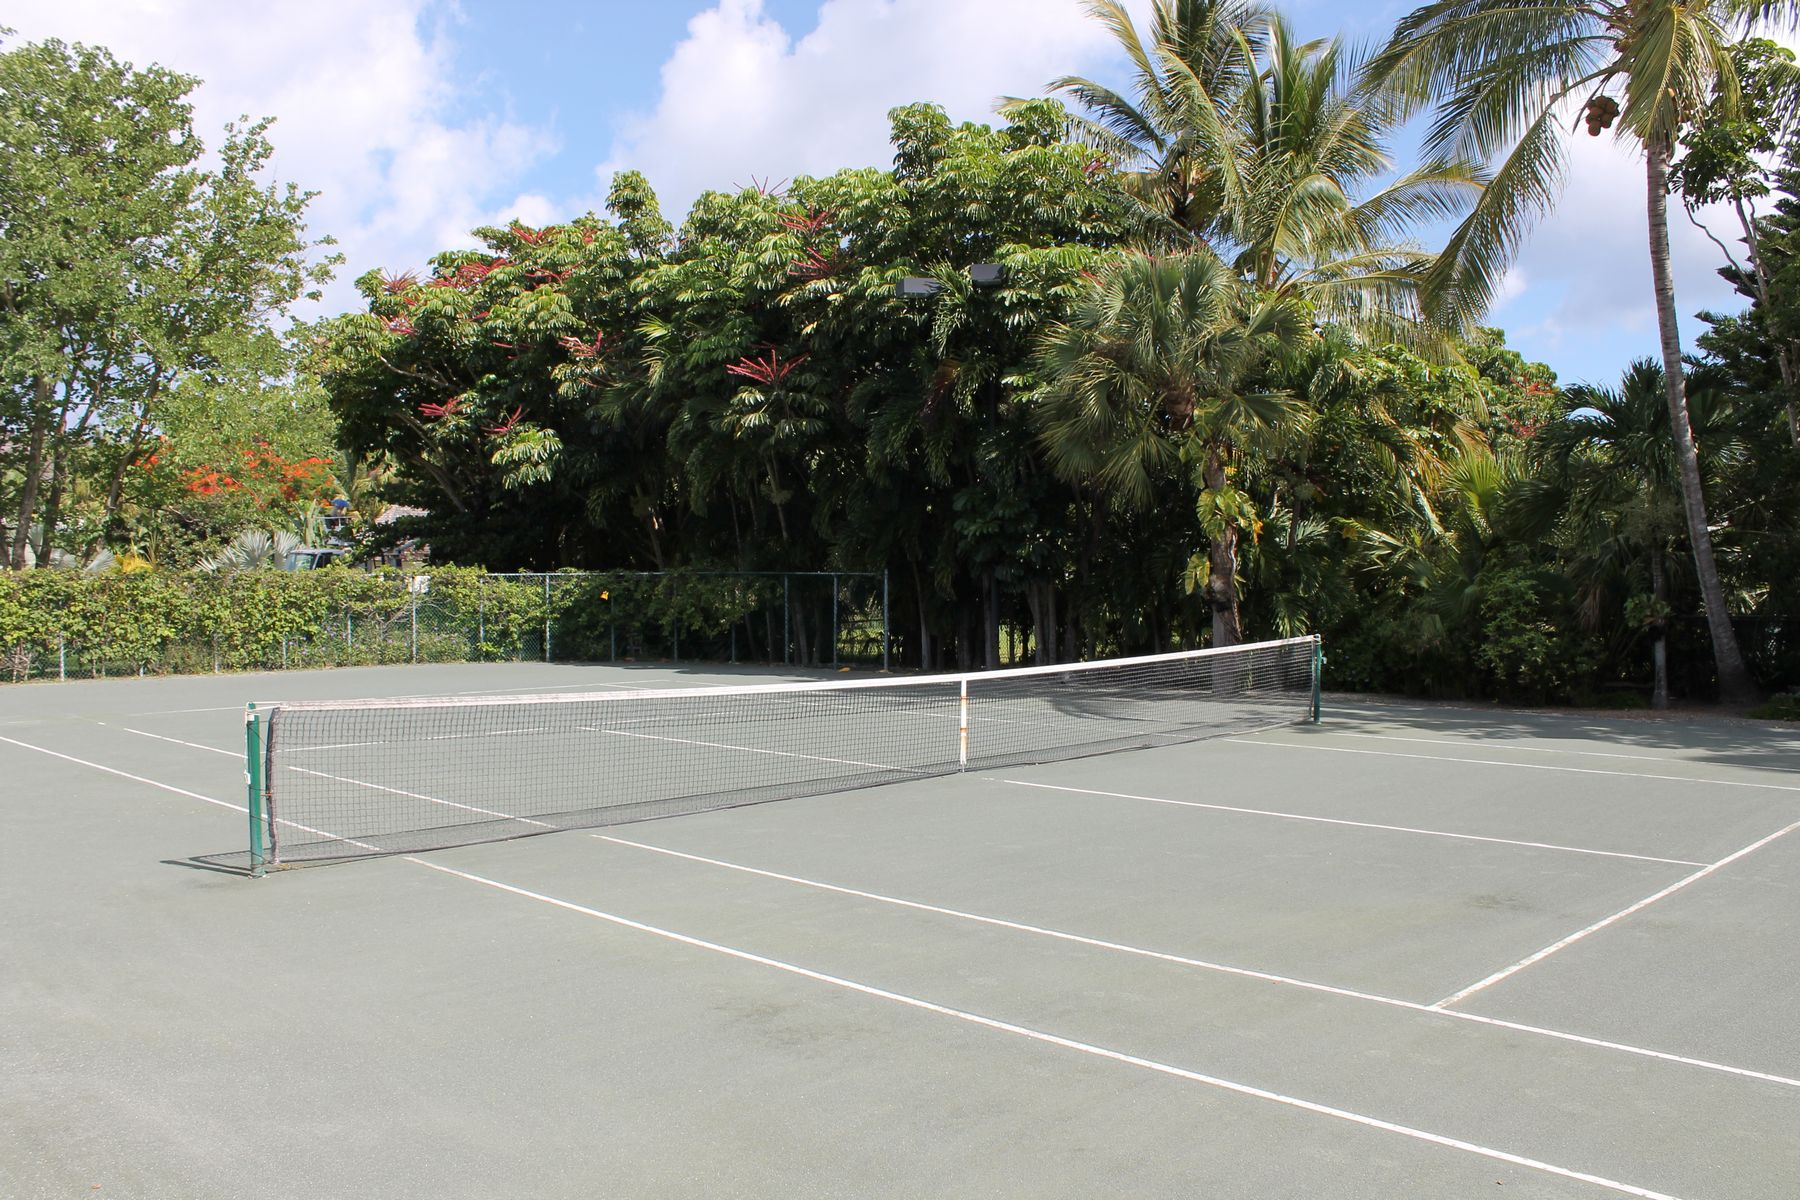 Additional photo for property listing at COURTSIDE Autres Bahamas, Autres Régions Des Bahamas Bahamas